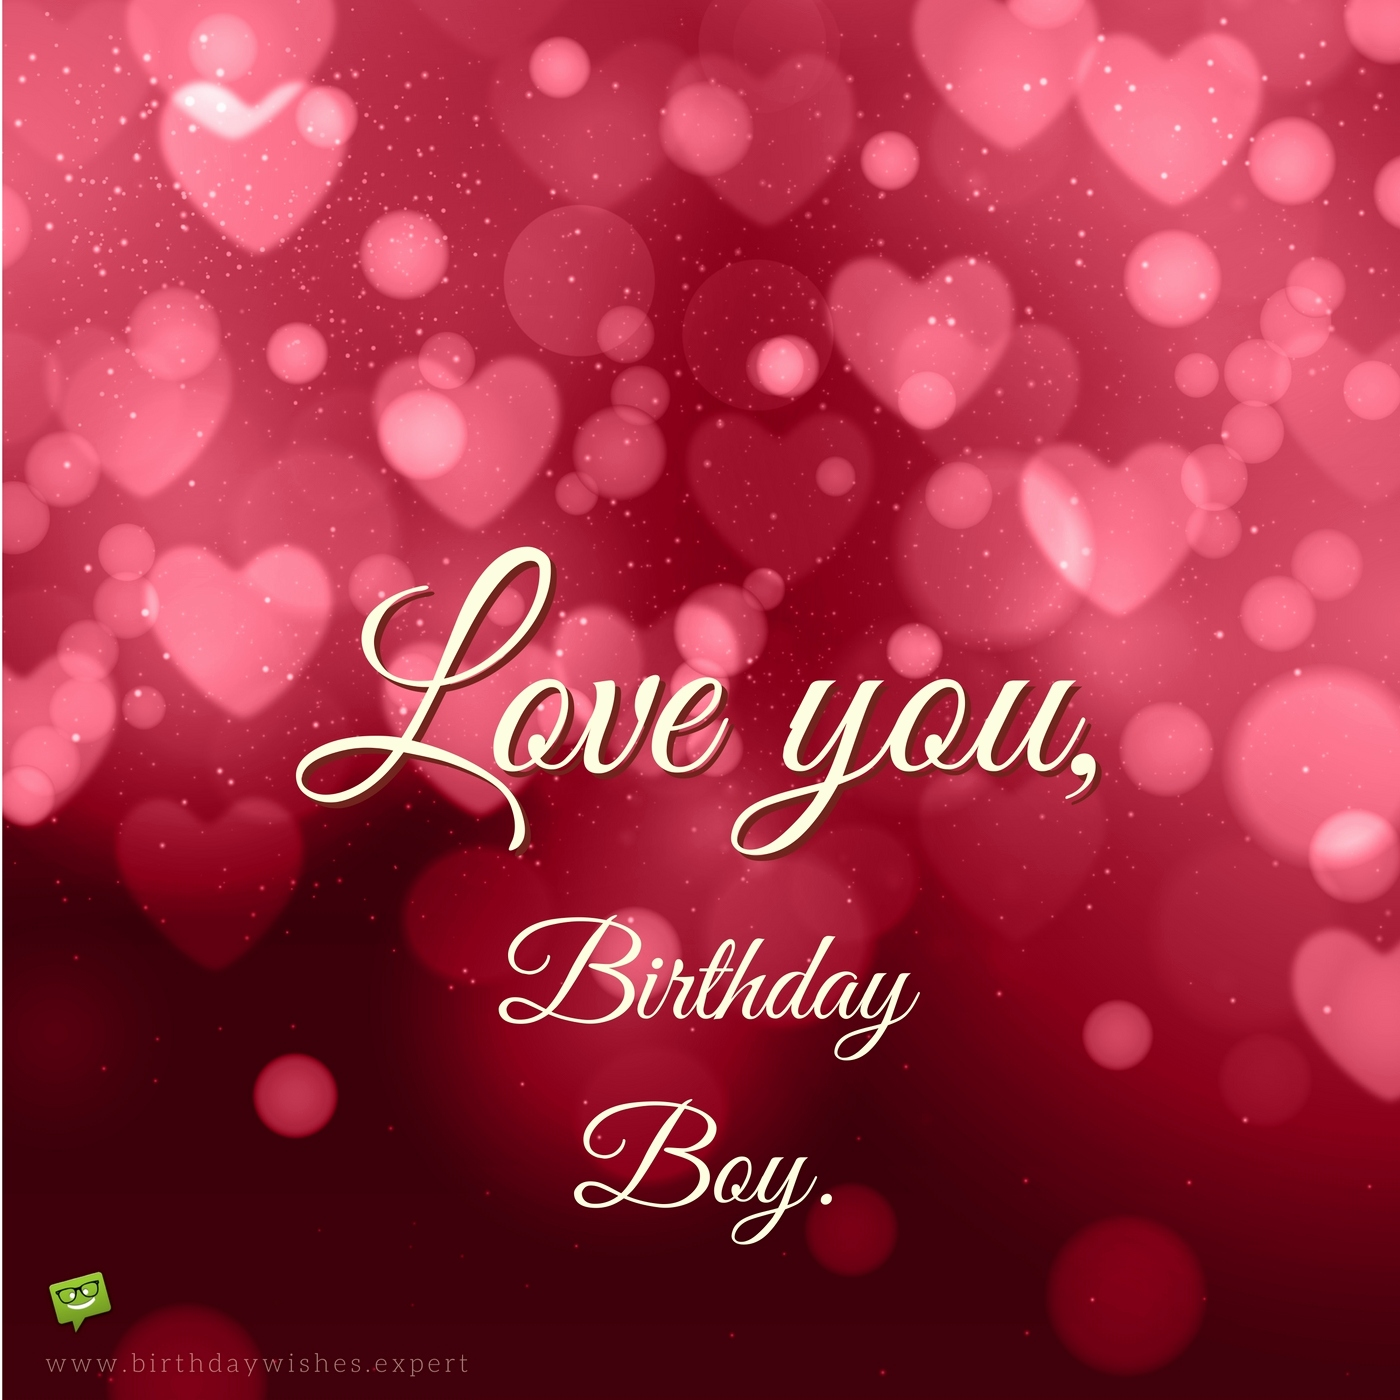 romantic greeting cards for husband birthday ; happy-birthday-greeting-card-for-husband-lovely-121-super-romantic-birthday-wishes-for-him-of-happy-birthday-greeting-card-for-husband